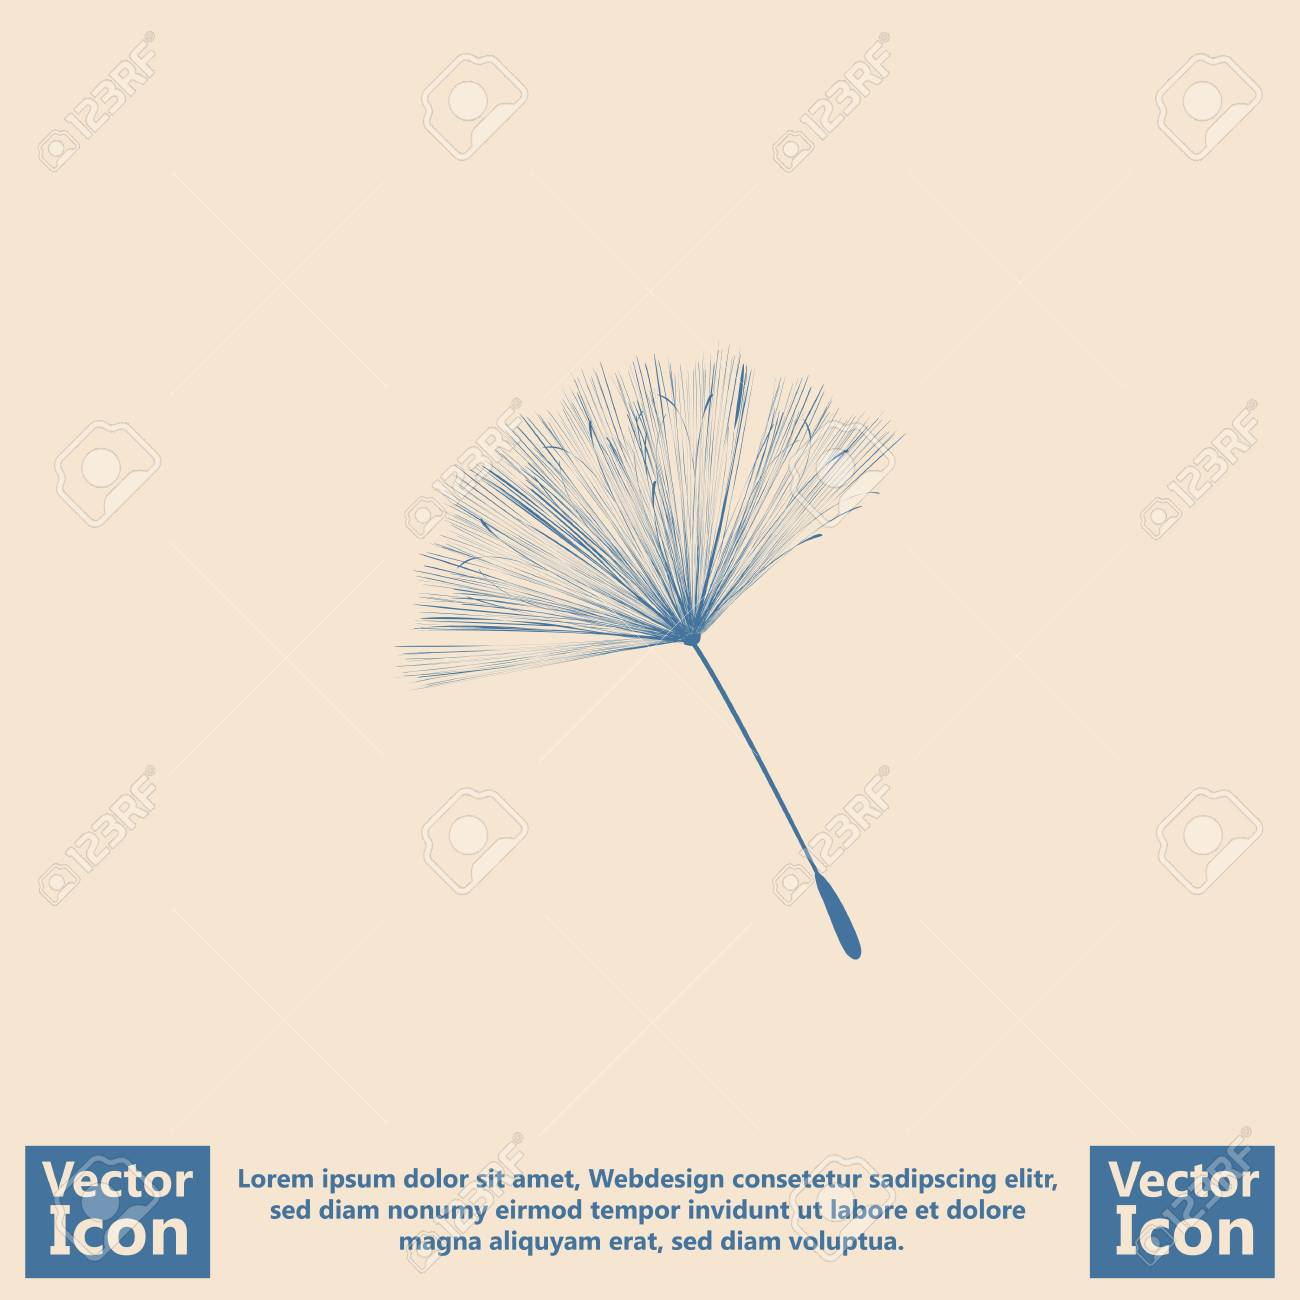 Flat Style Icon With Dandelion Symbol Royalty Free Cliparts